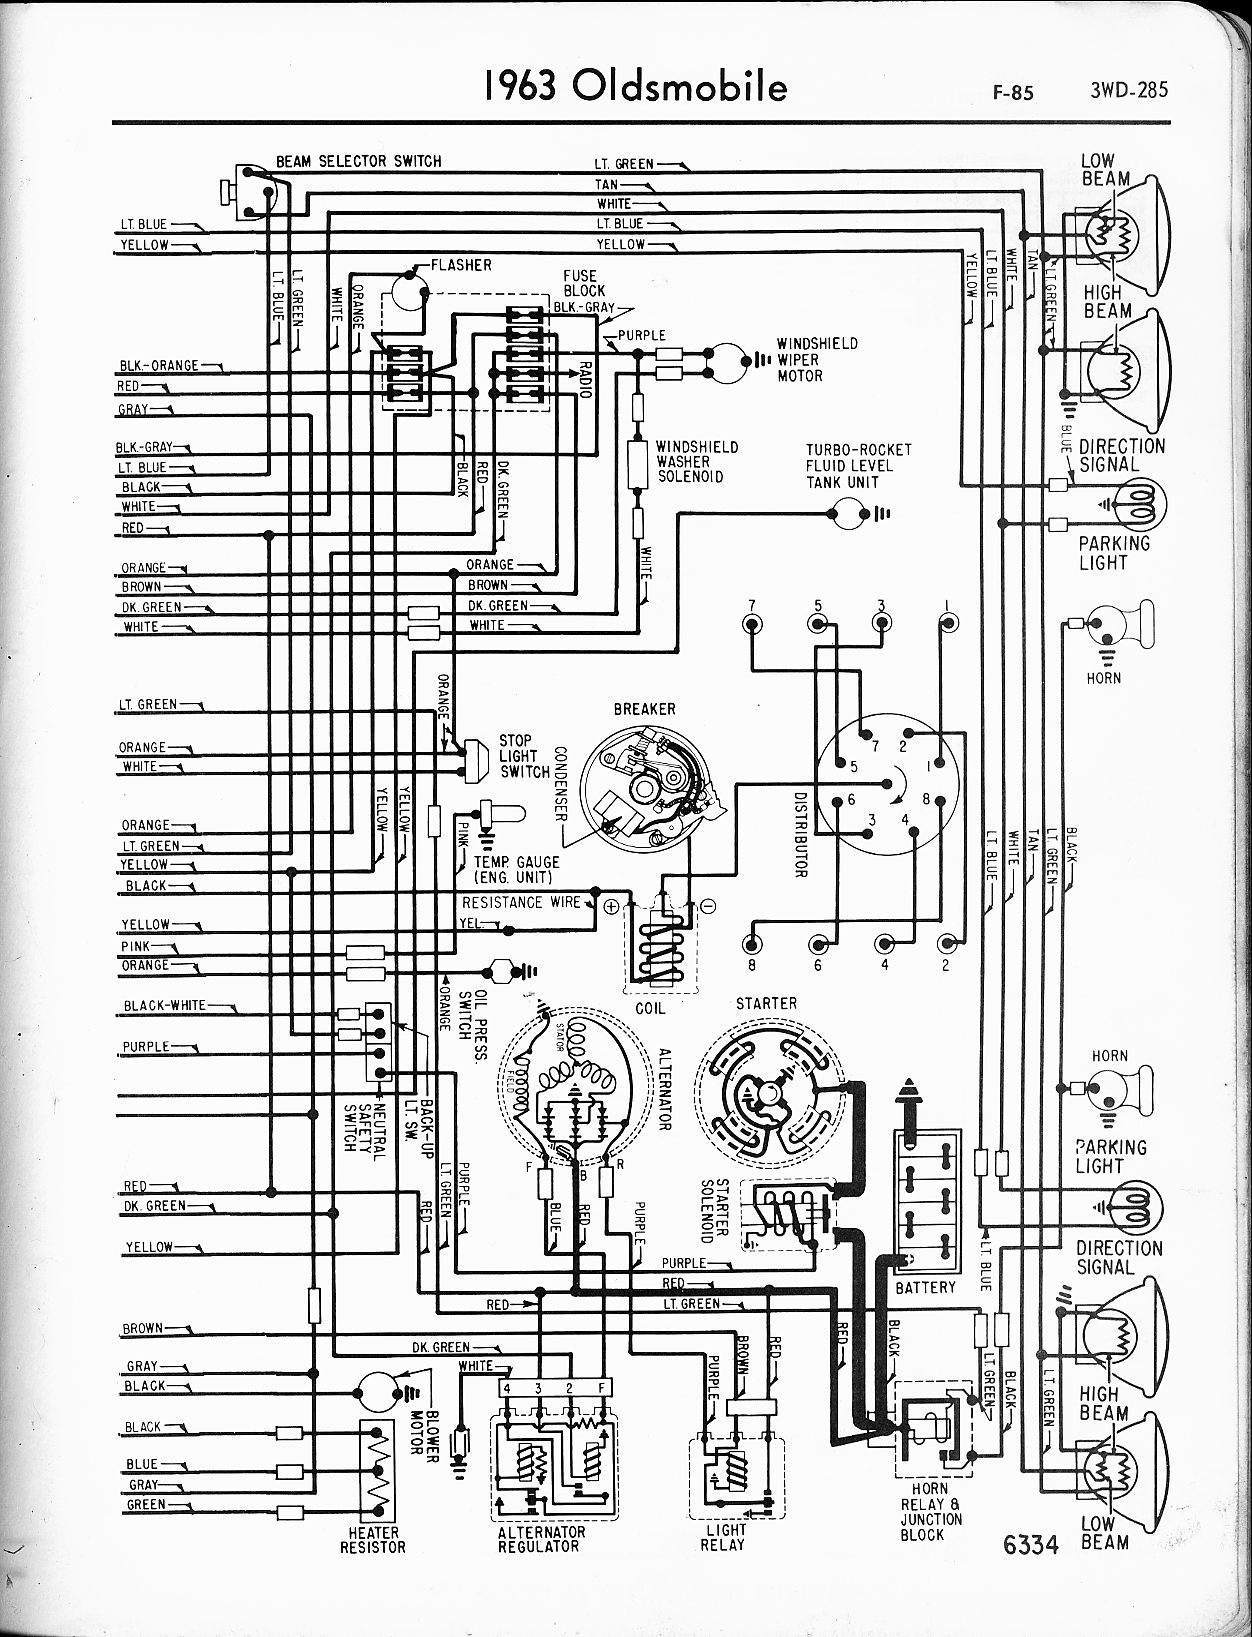 1970 Oldsmobile Cutlass Wiring Diagram on 1963 gmc wiring diagram